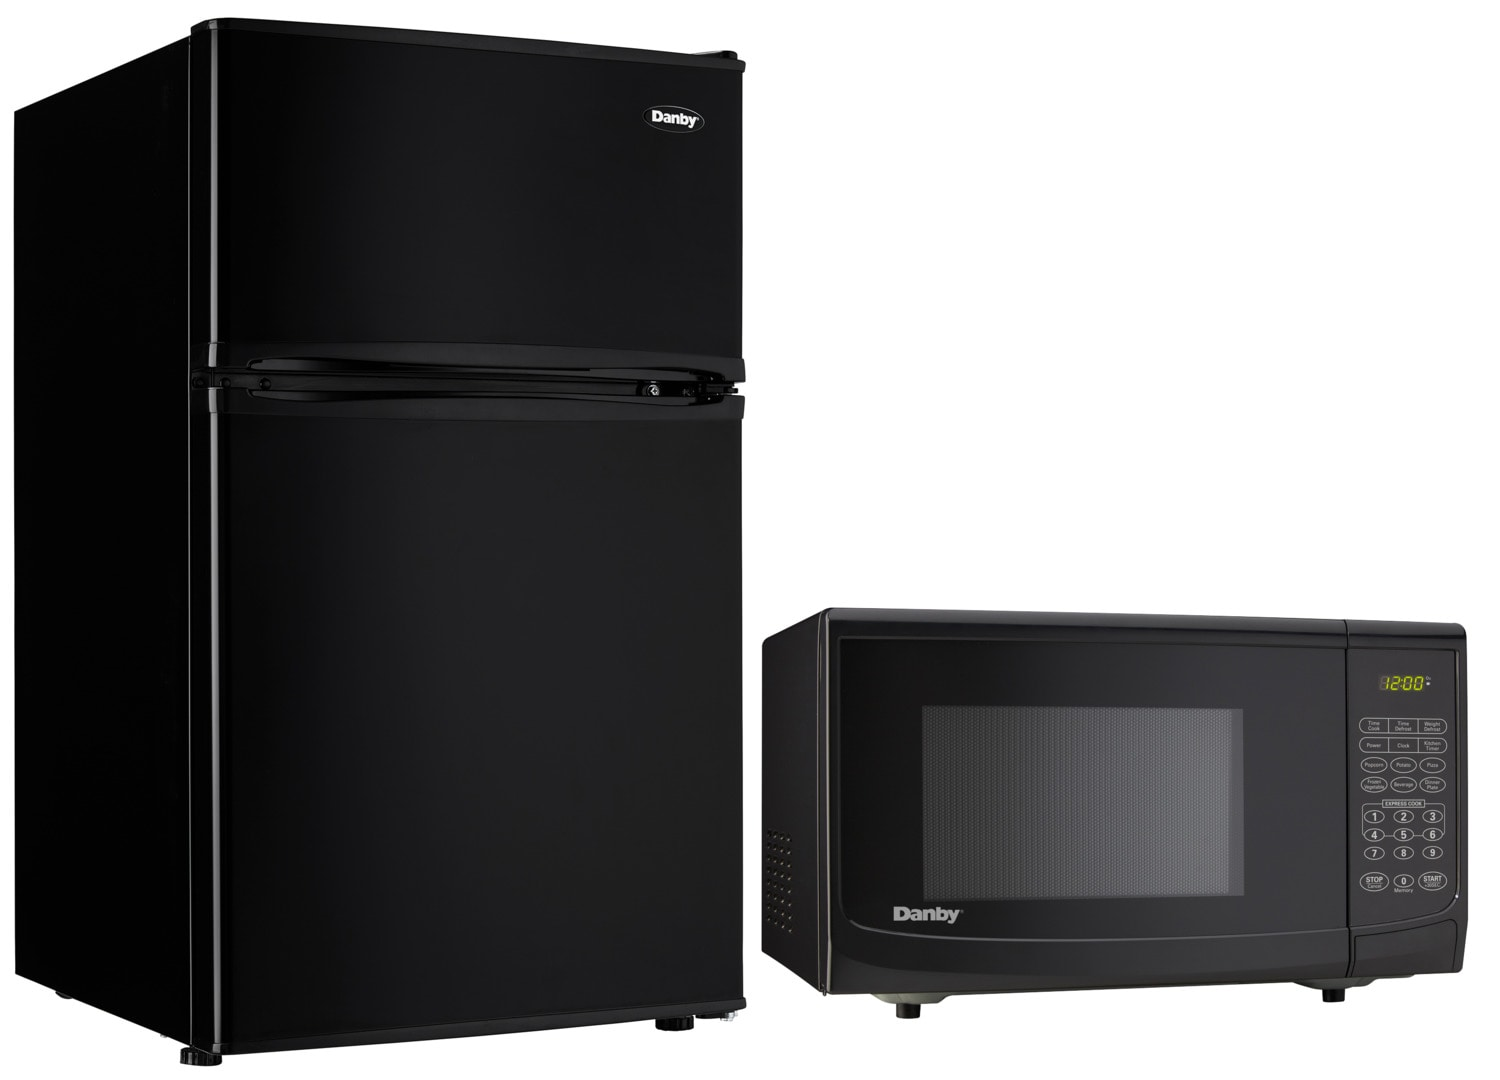 Danby Black Compact Fridge and Microwave Package